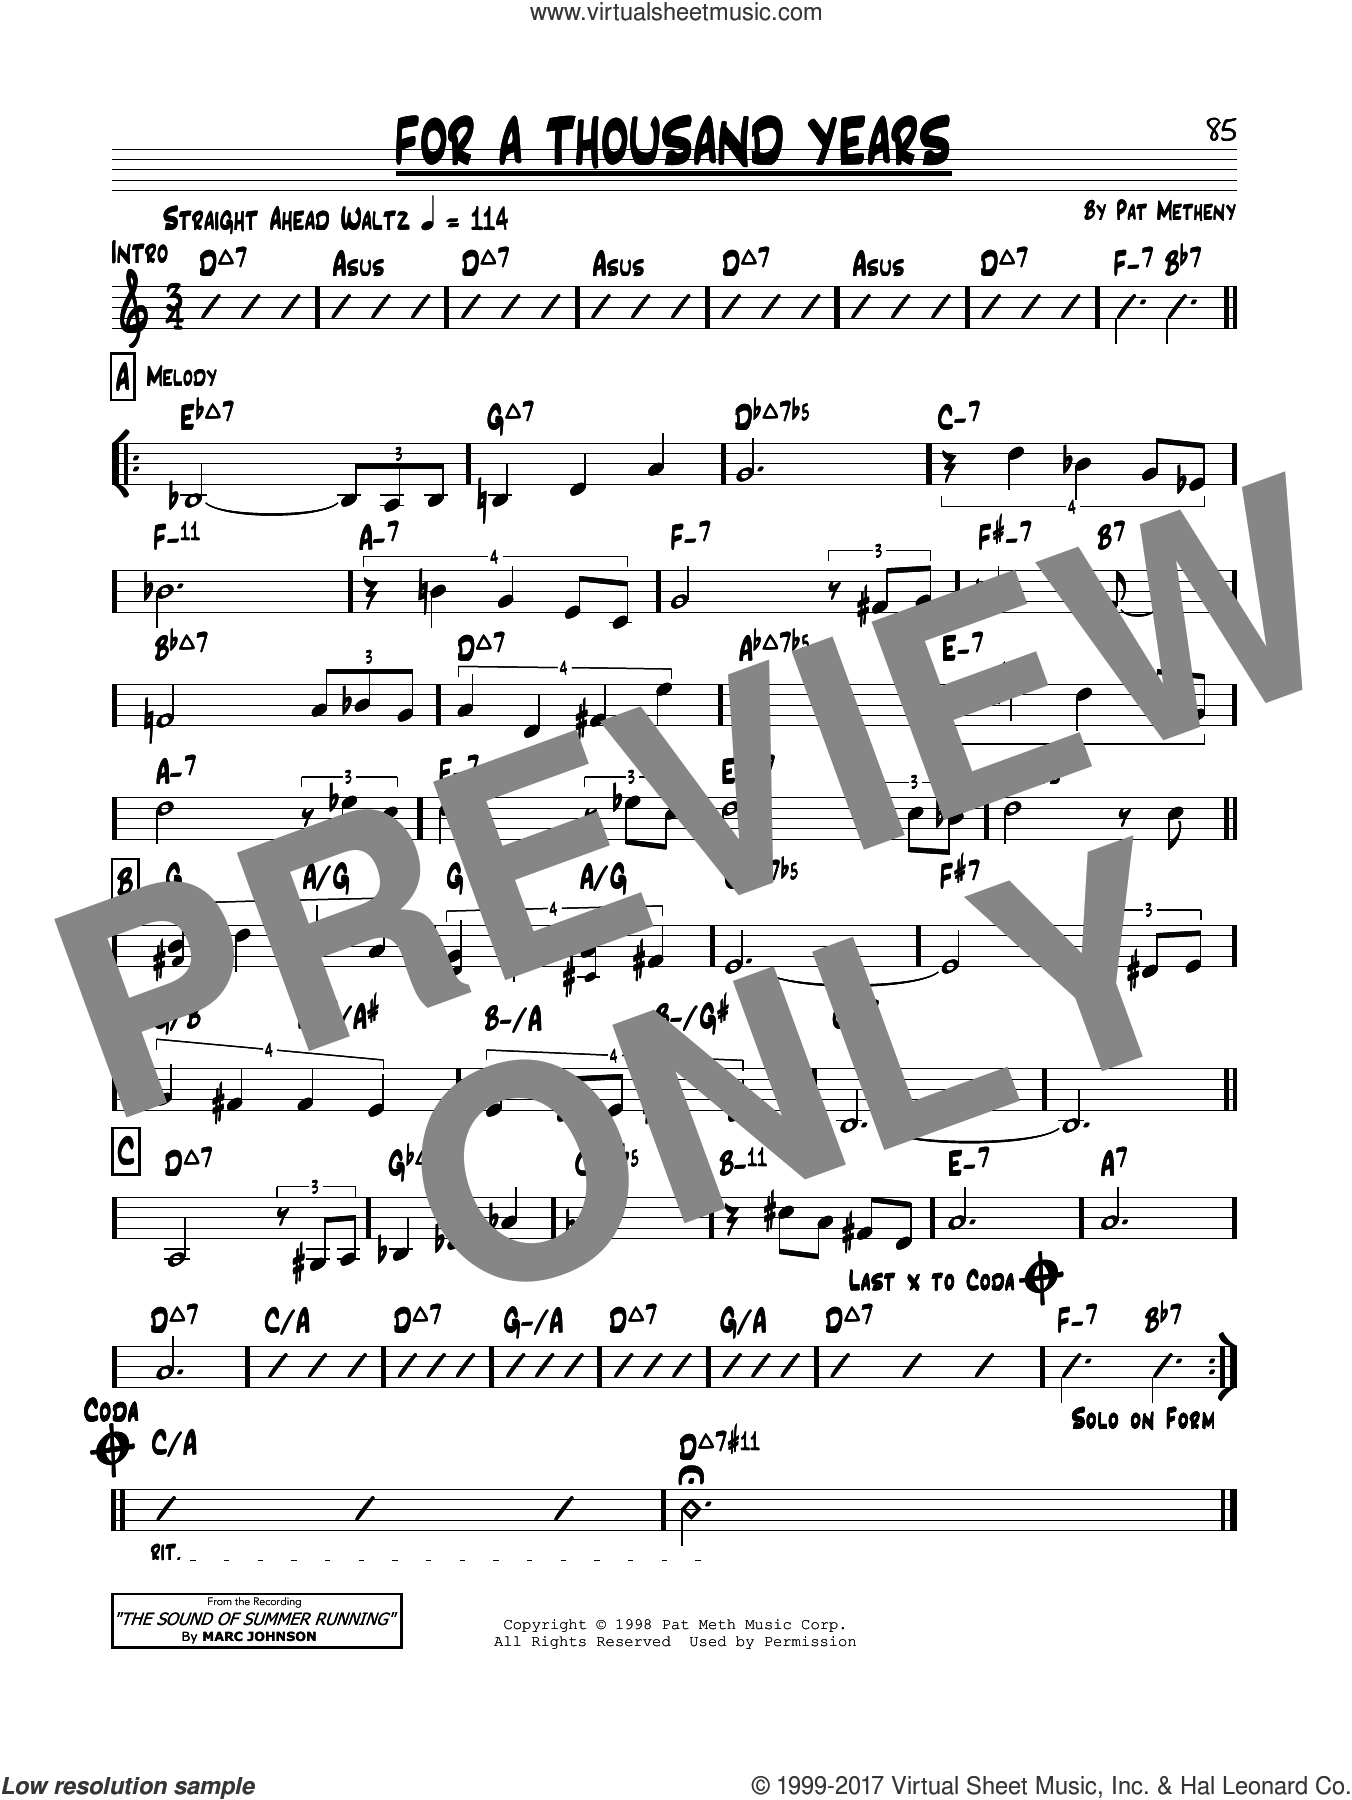 A Thousand Years Chords Metheny For A Thousand Years Sheet Music Real Book Melody And Chords Real Book